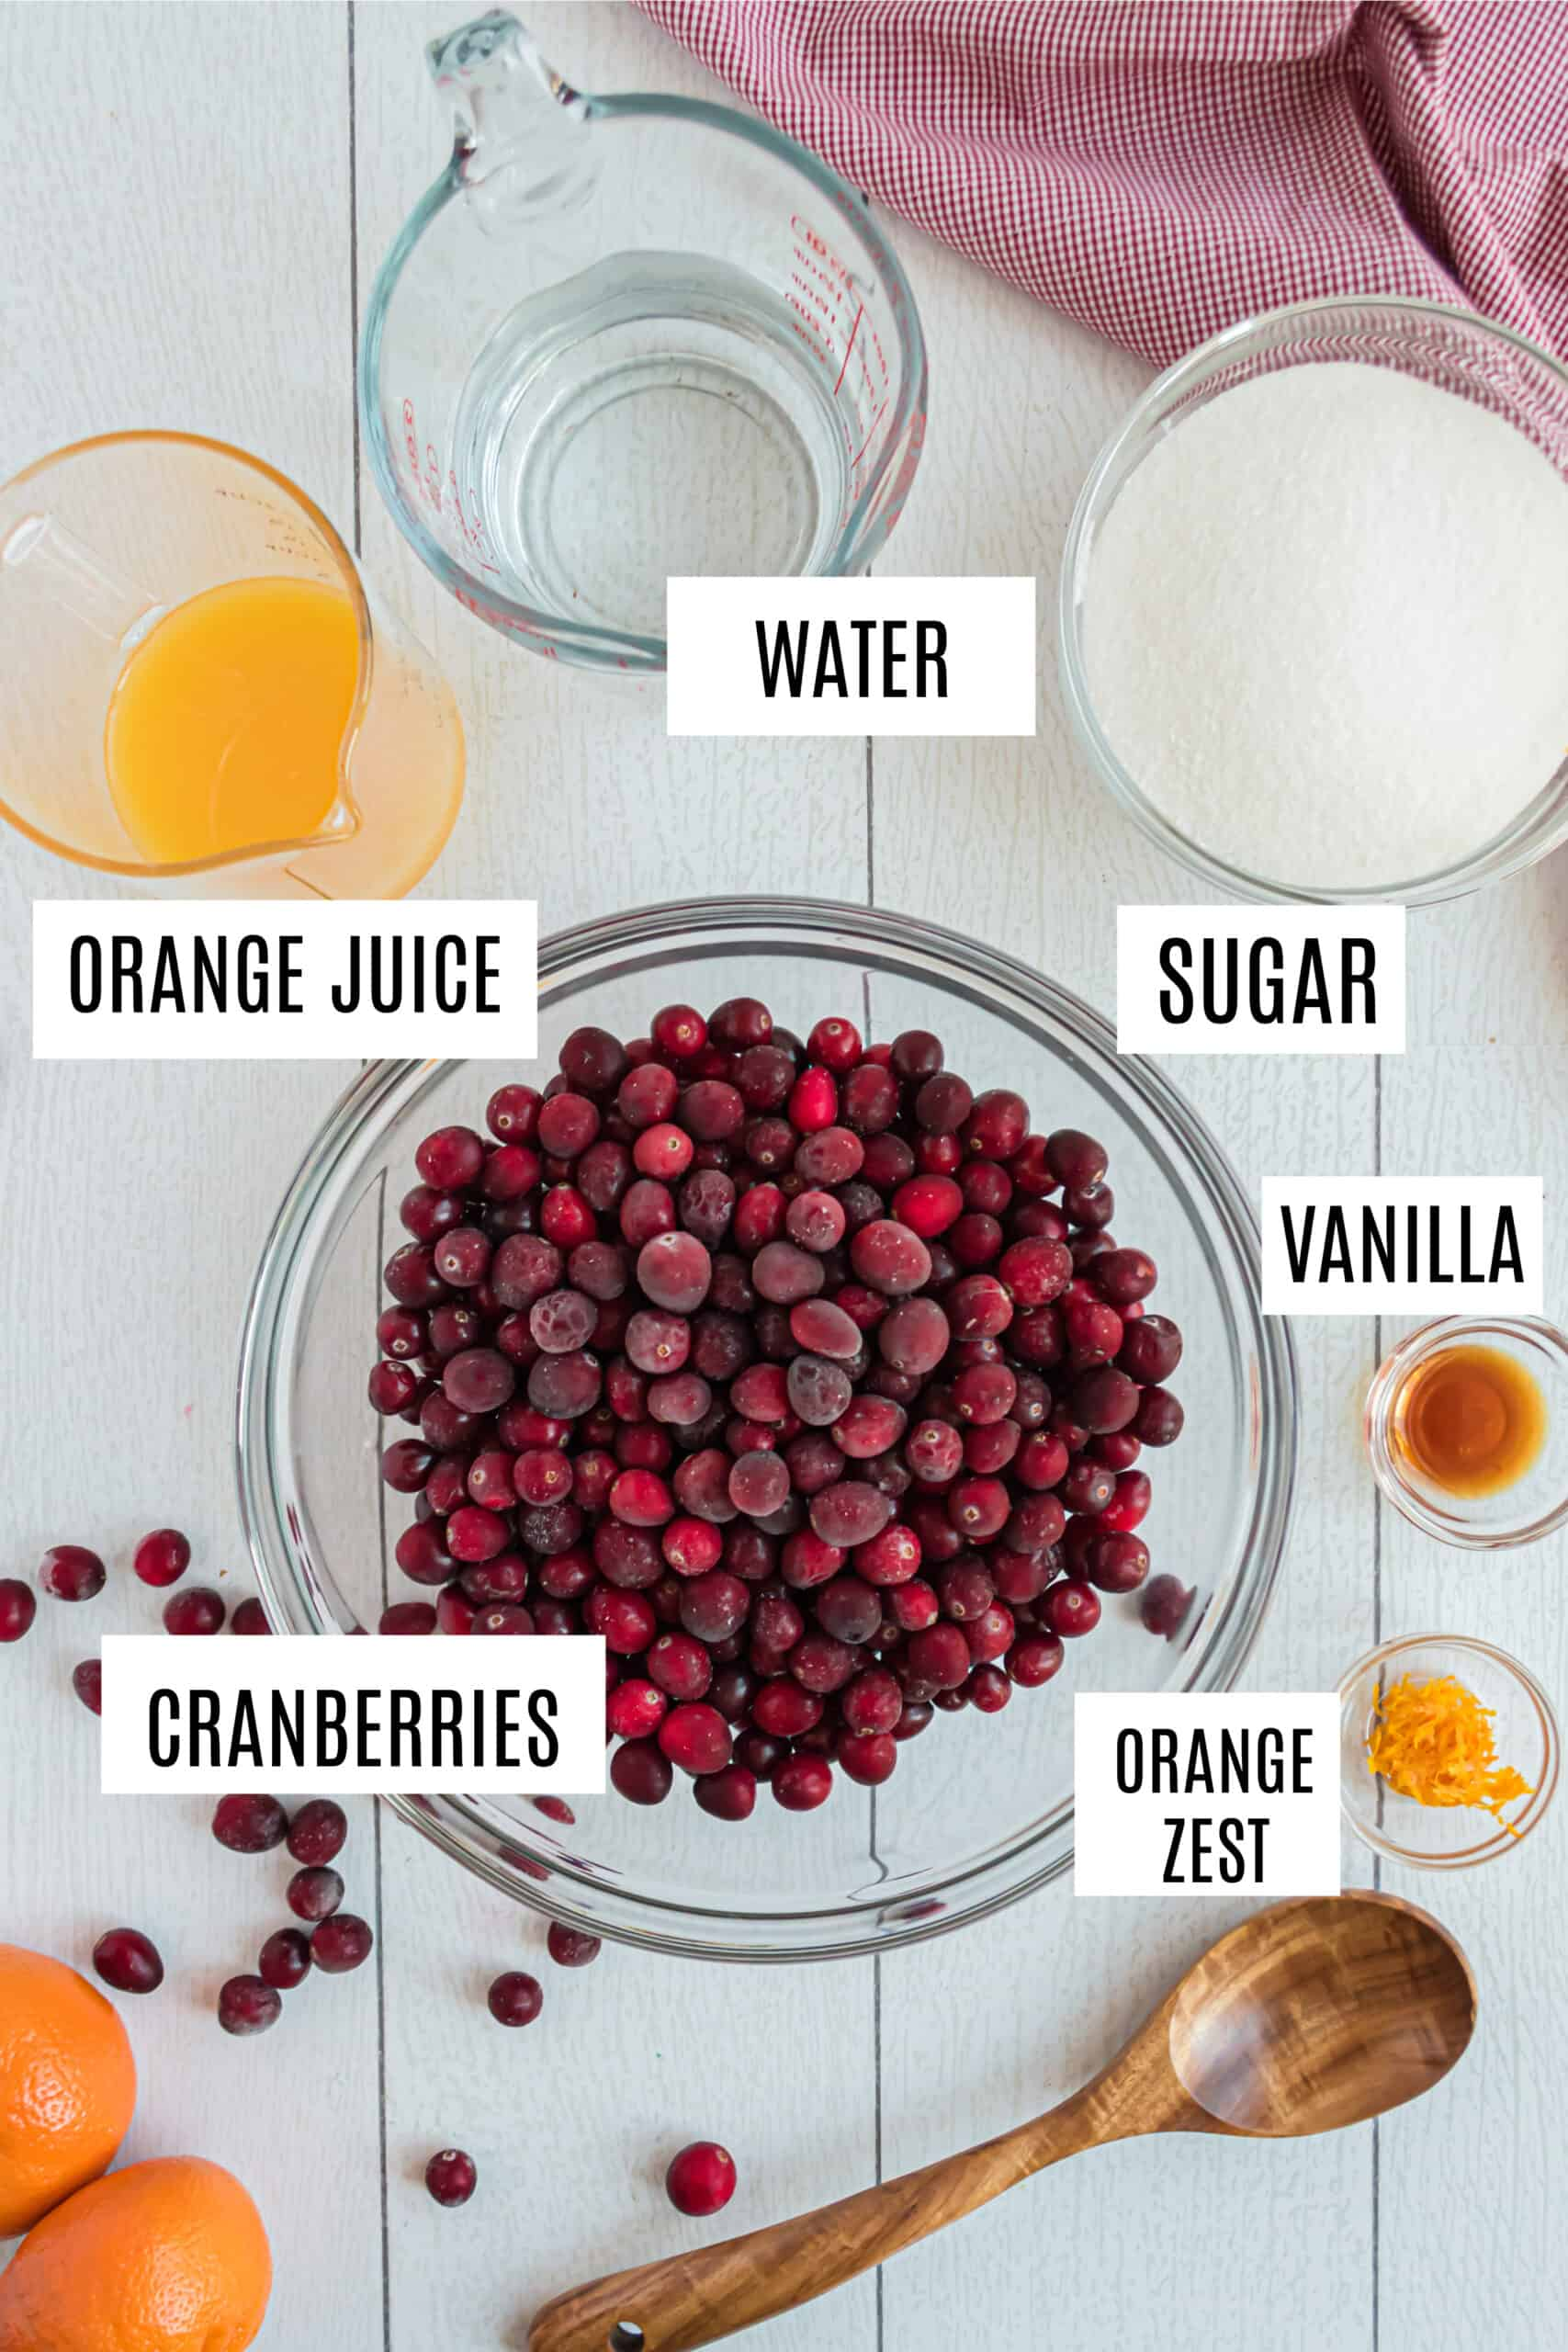 Ingredients needed to make cranberry sauce from scratch.